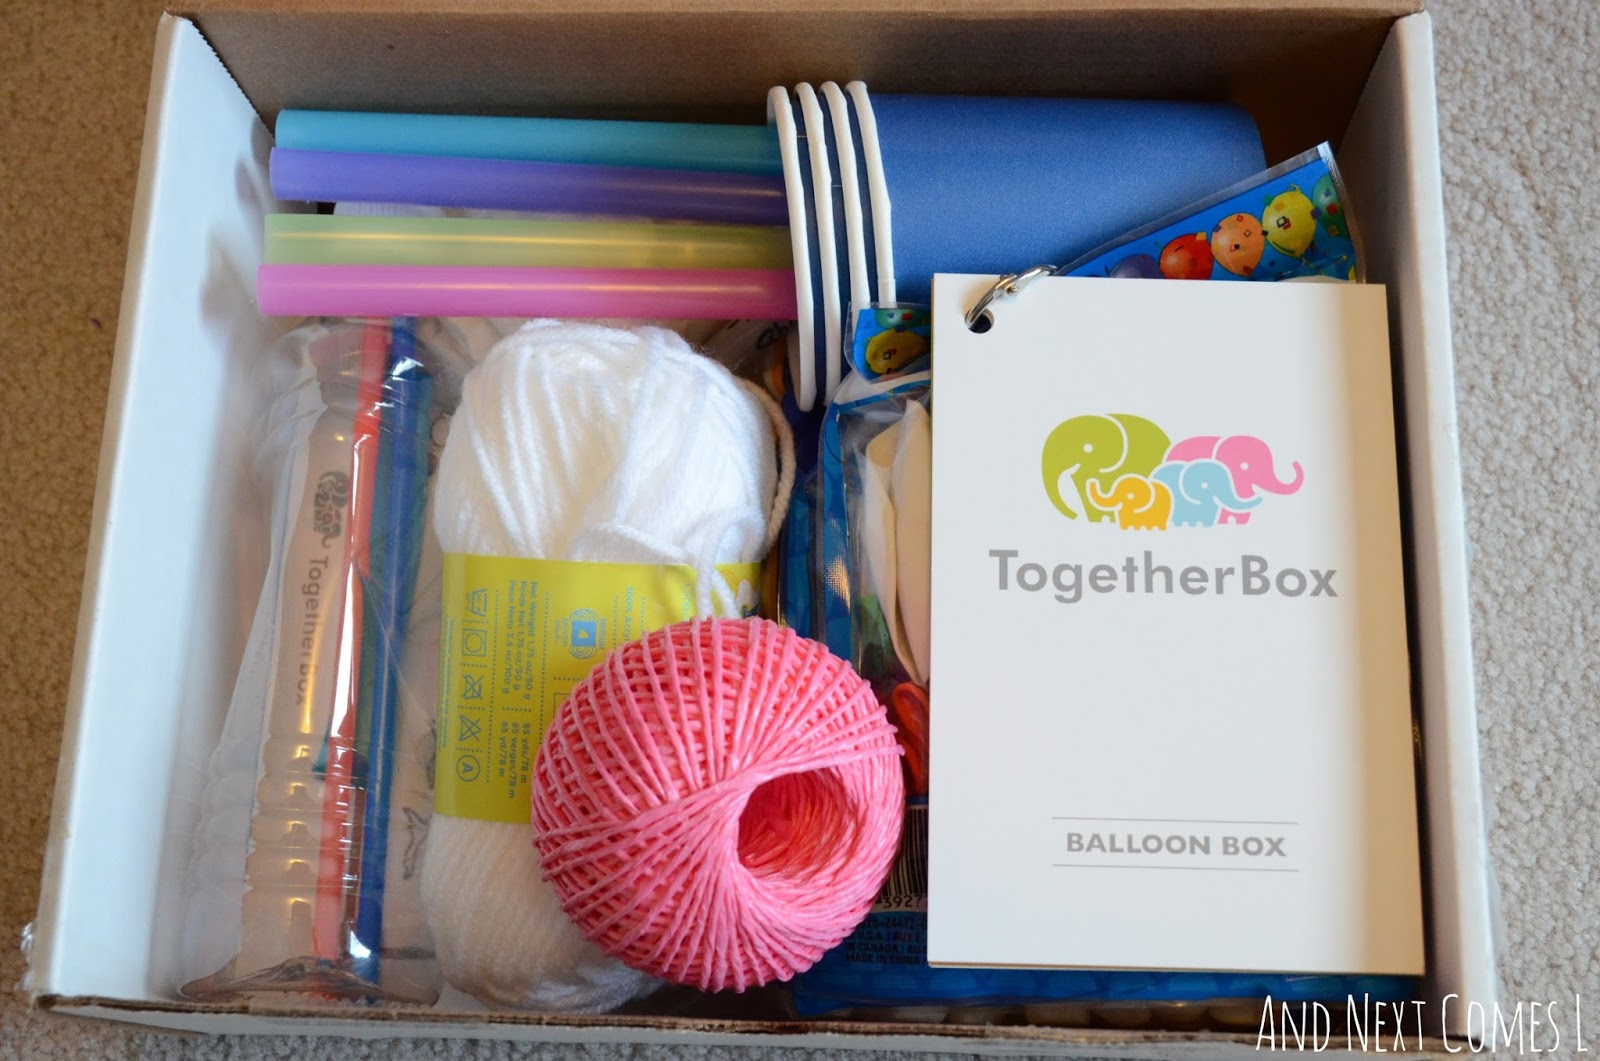 Inside the Together Box's balloon box from And Next Comes L